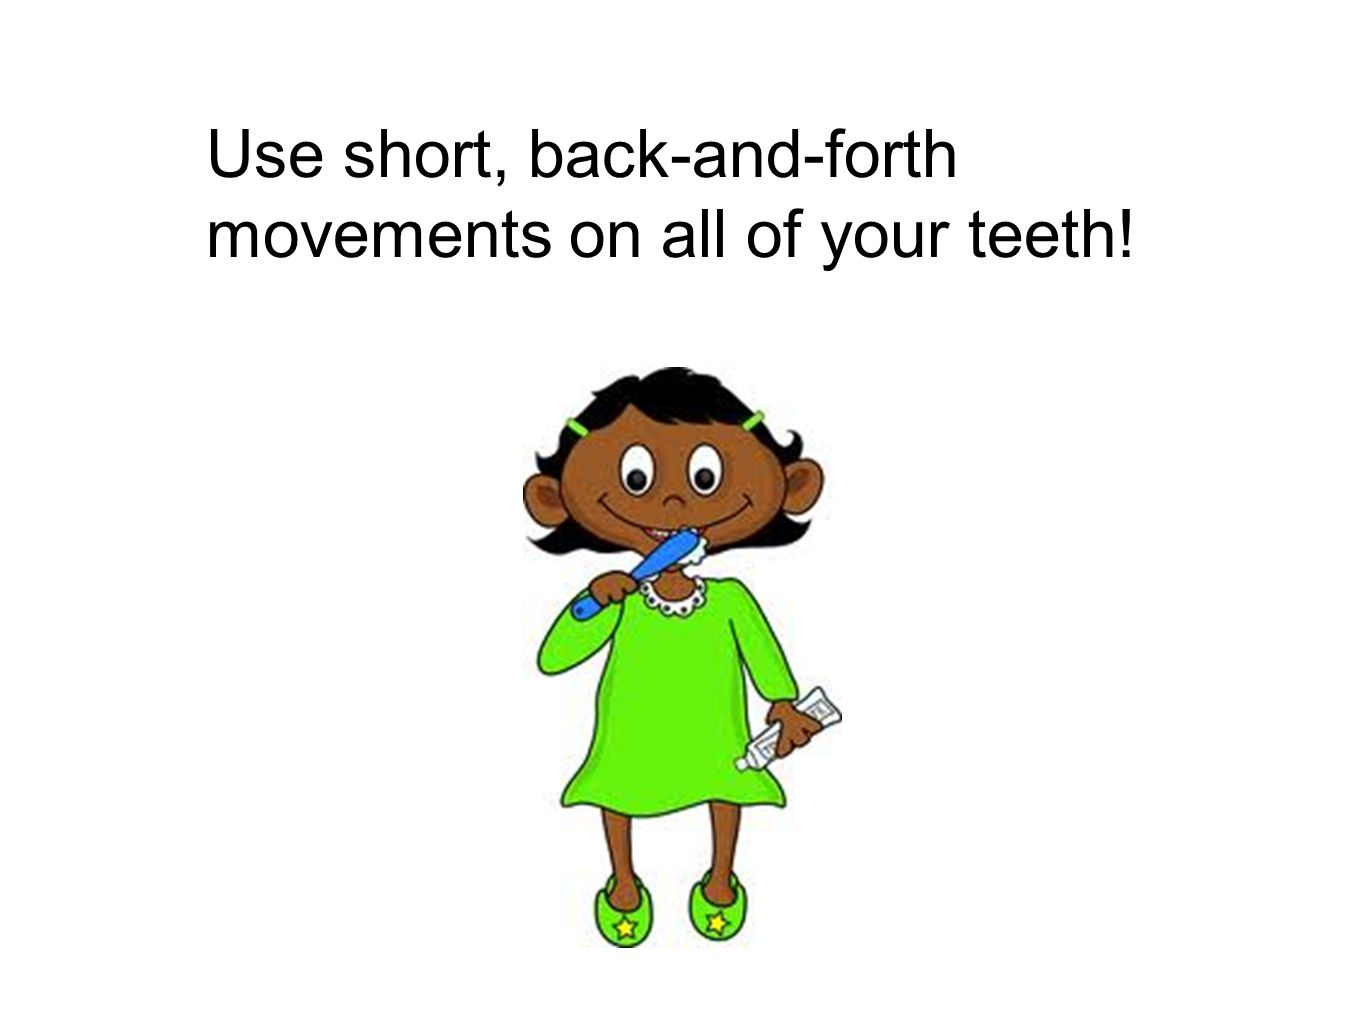 Use short, back-and-forth movements on all of your teeth!